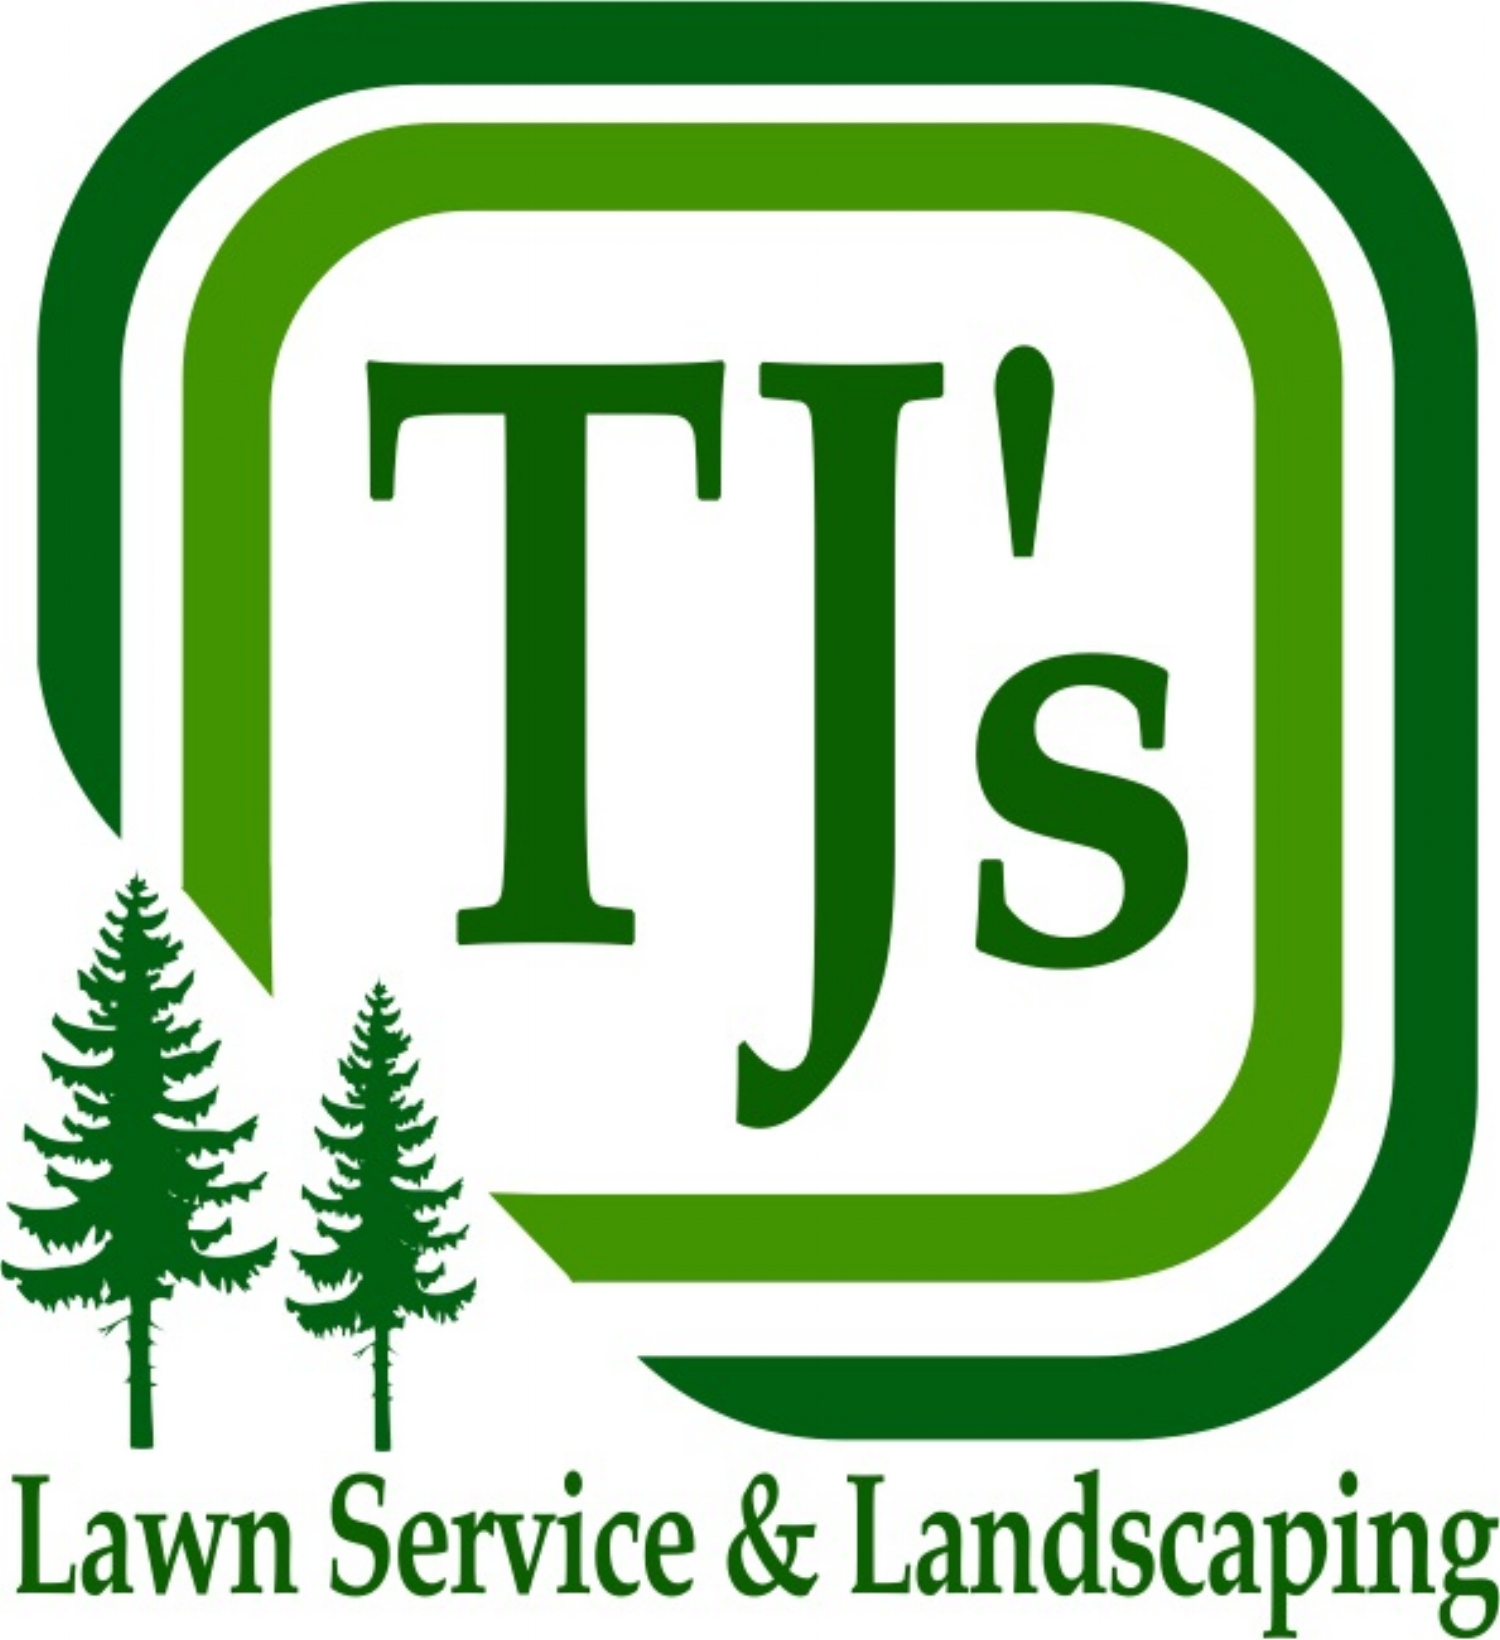 TJ's Lawn Service & Landscaping